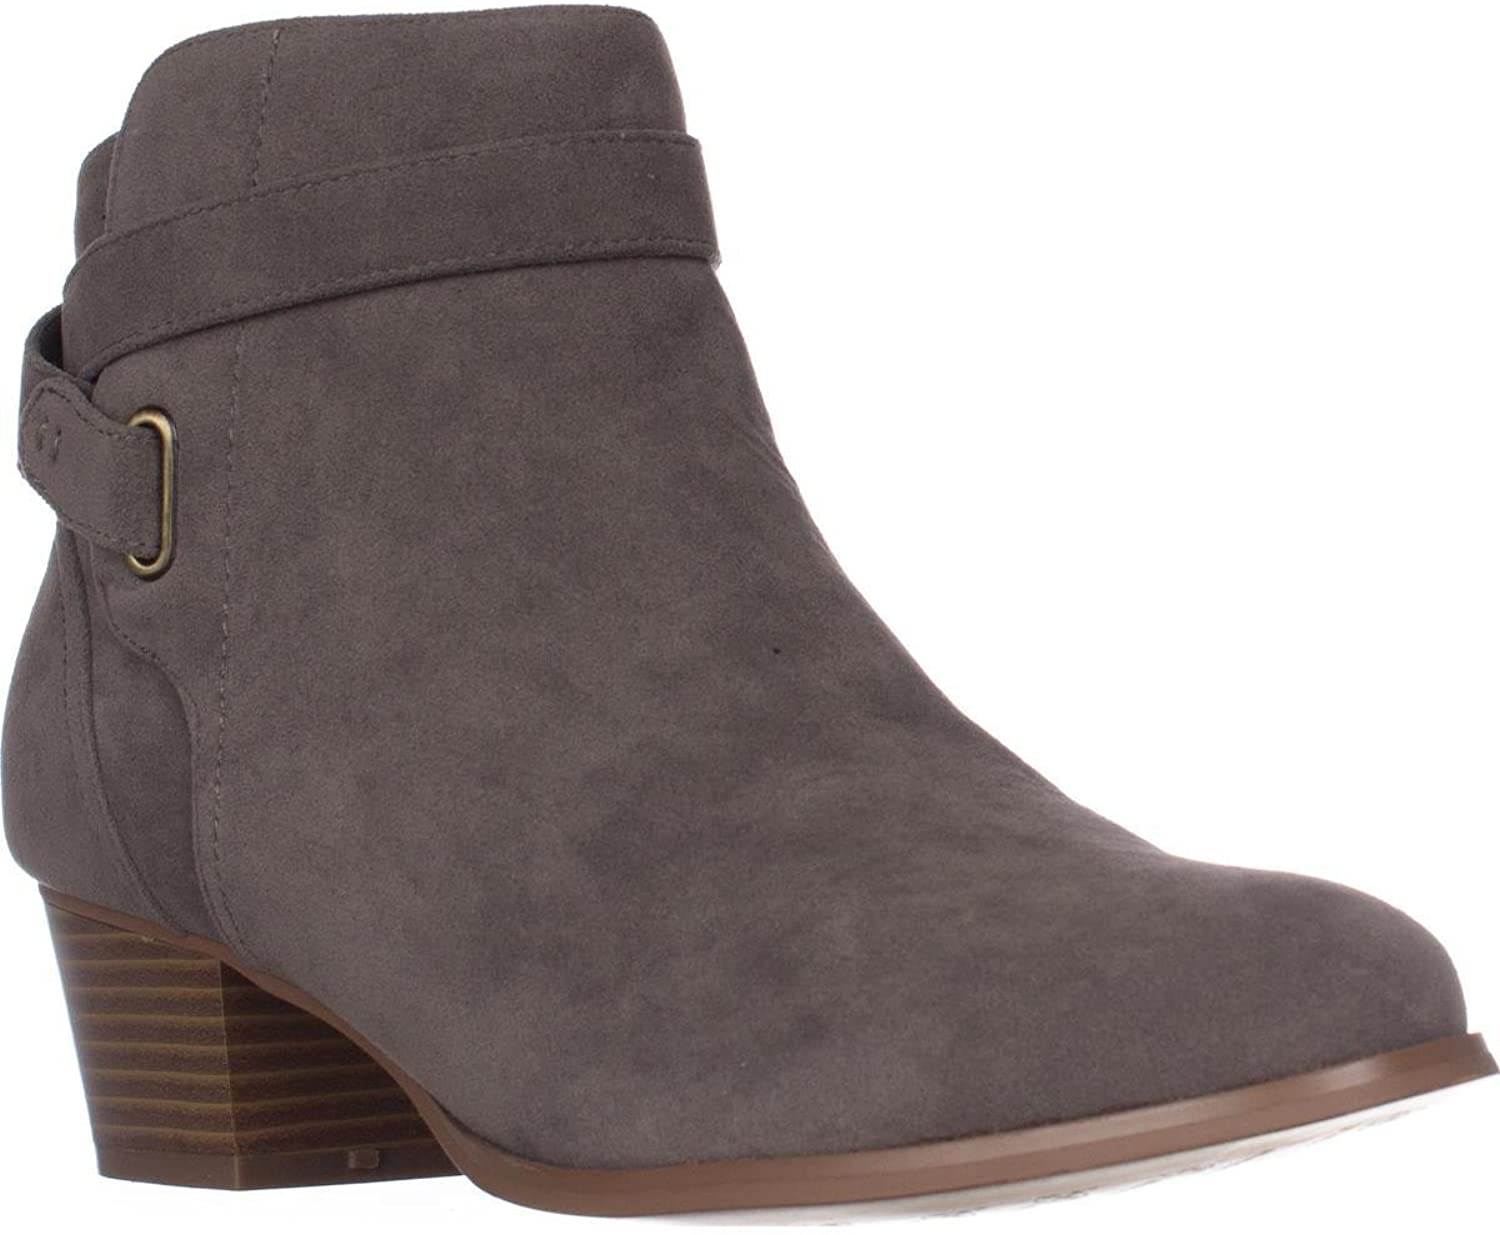 Giani Bernini Womens Oleesia Faux Suede Ankle Booties Taupe 8.5 Medium (B,M)